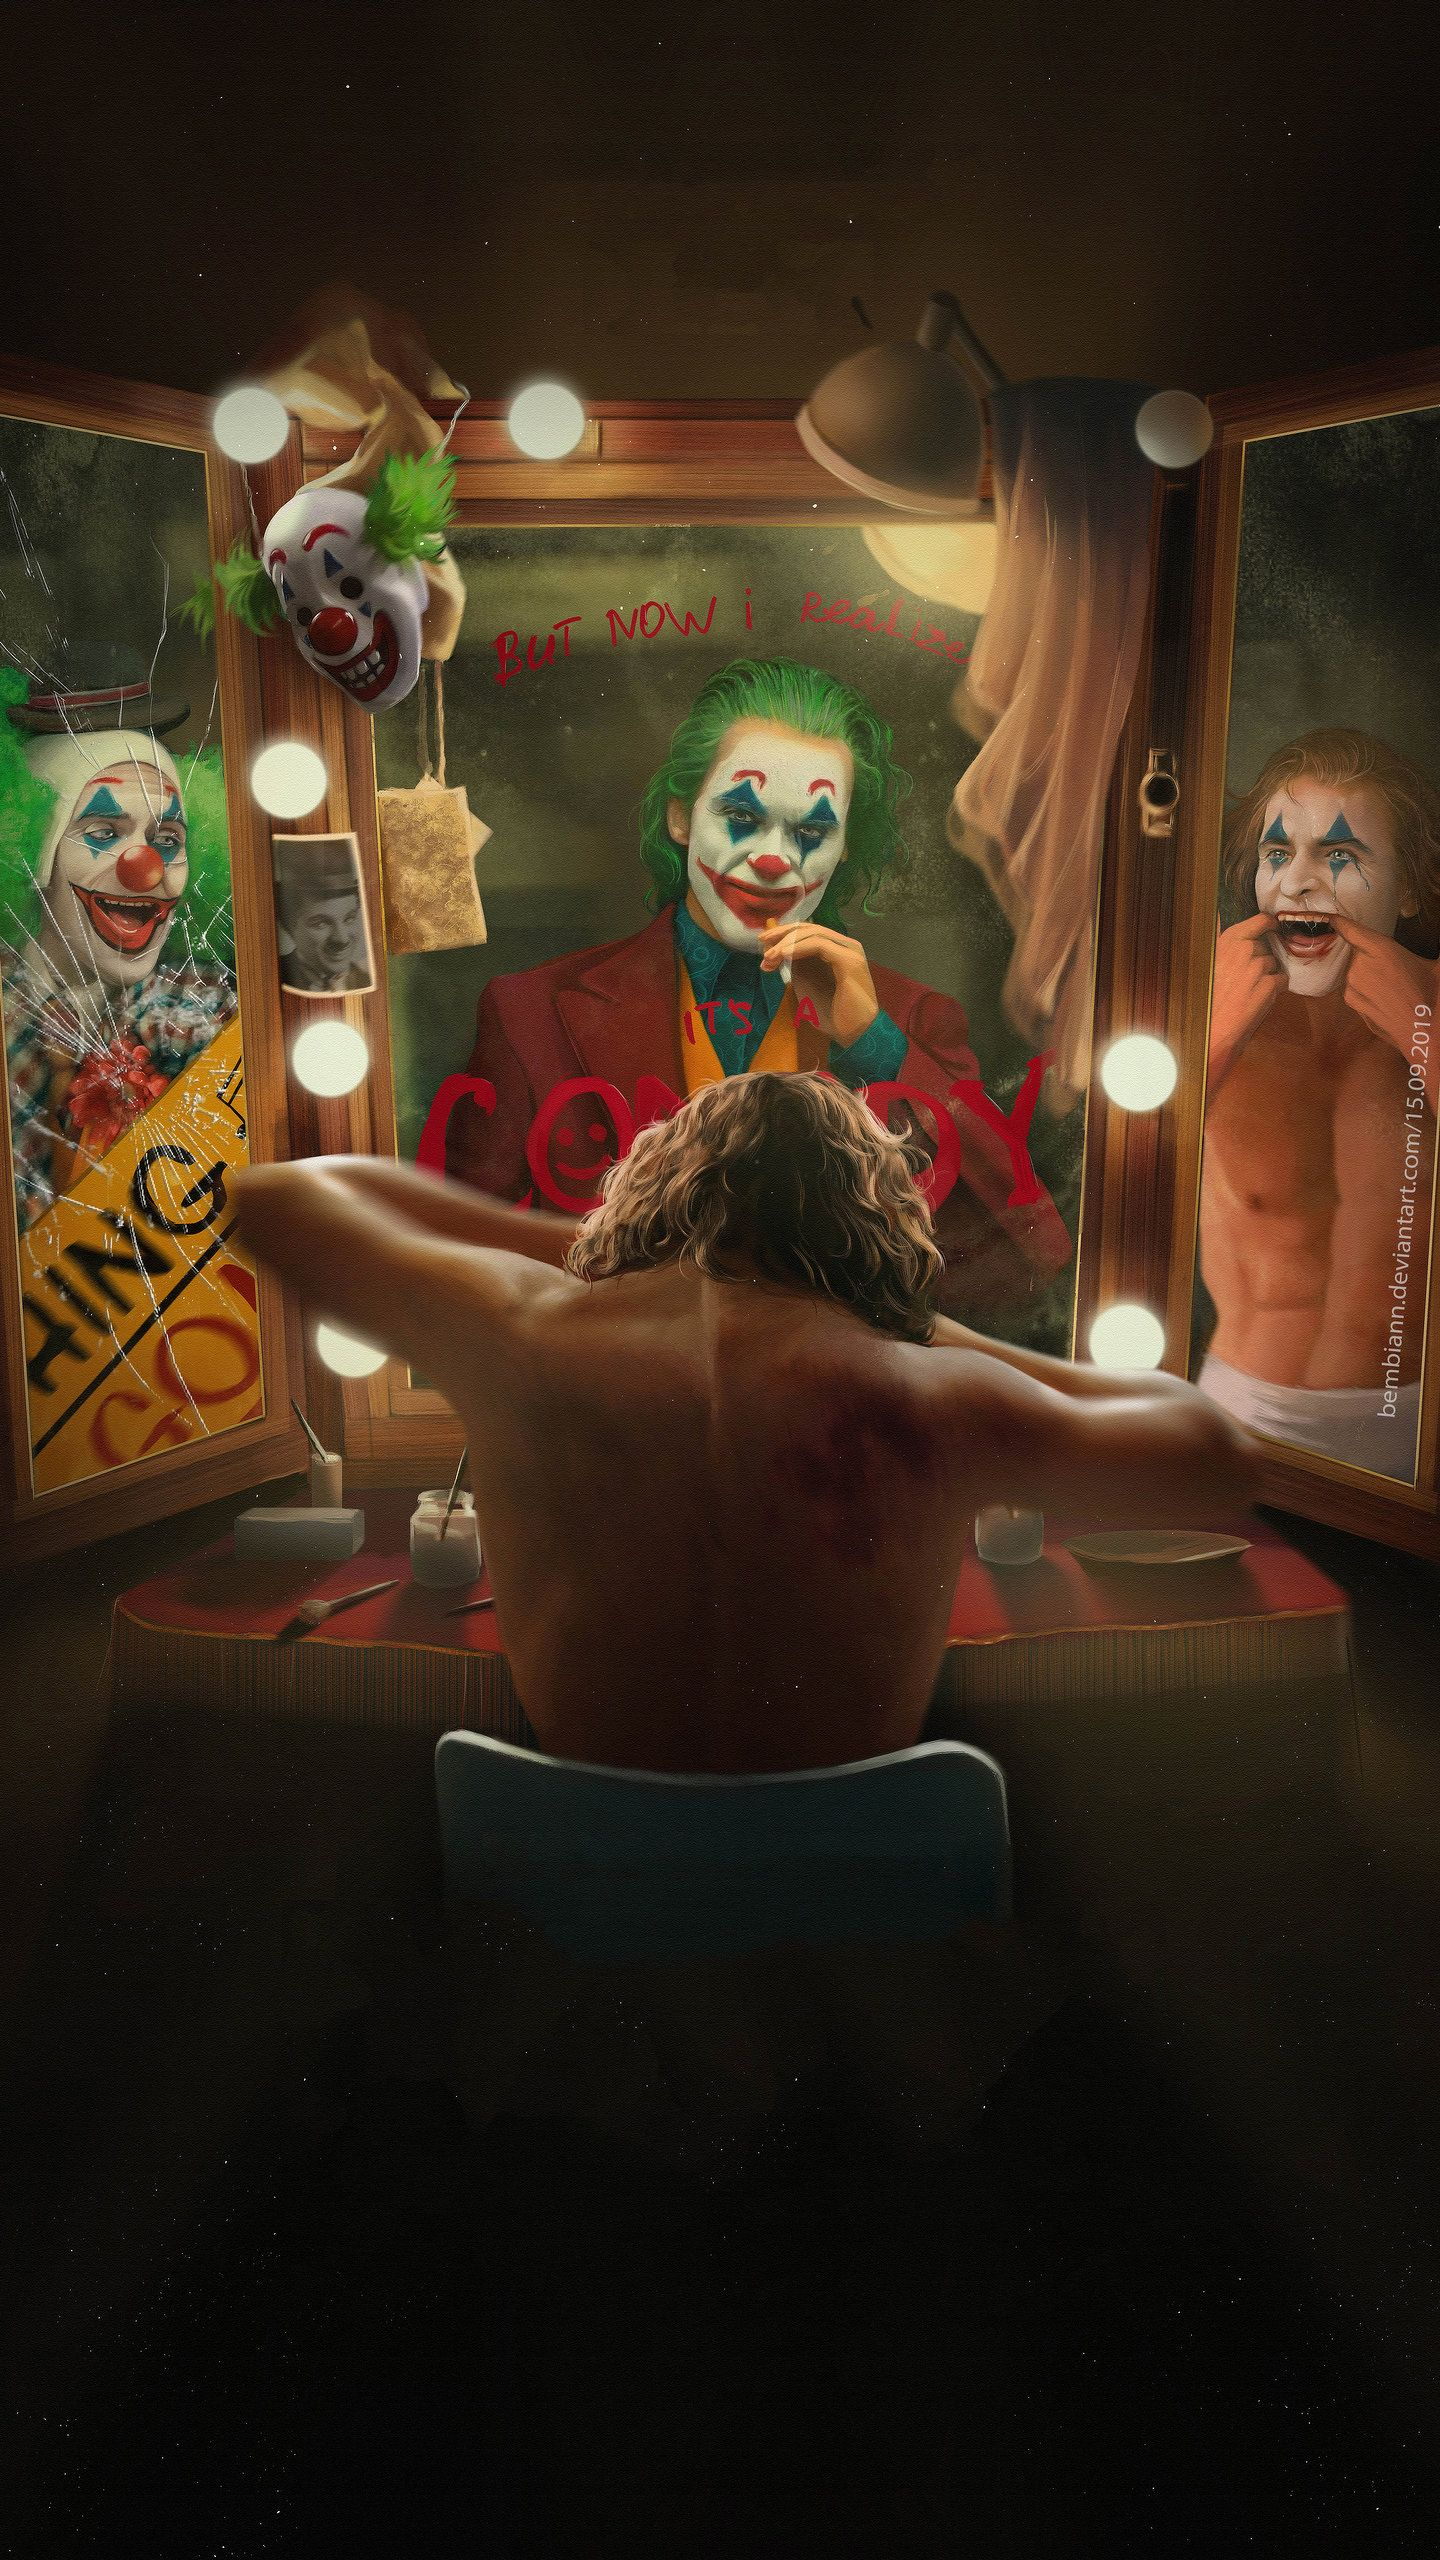 Joker 5k Movie Hd Wallpaper 1440x2560 Joker Hd Wallpaper Joker Poster Joker Artwork